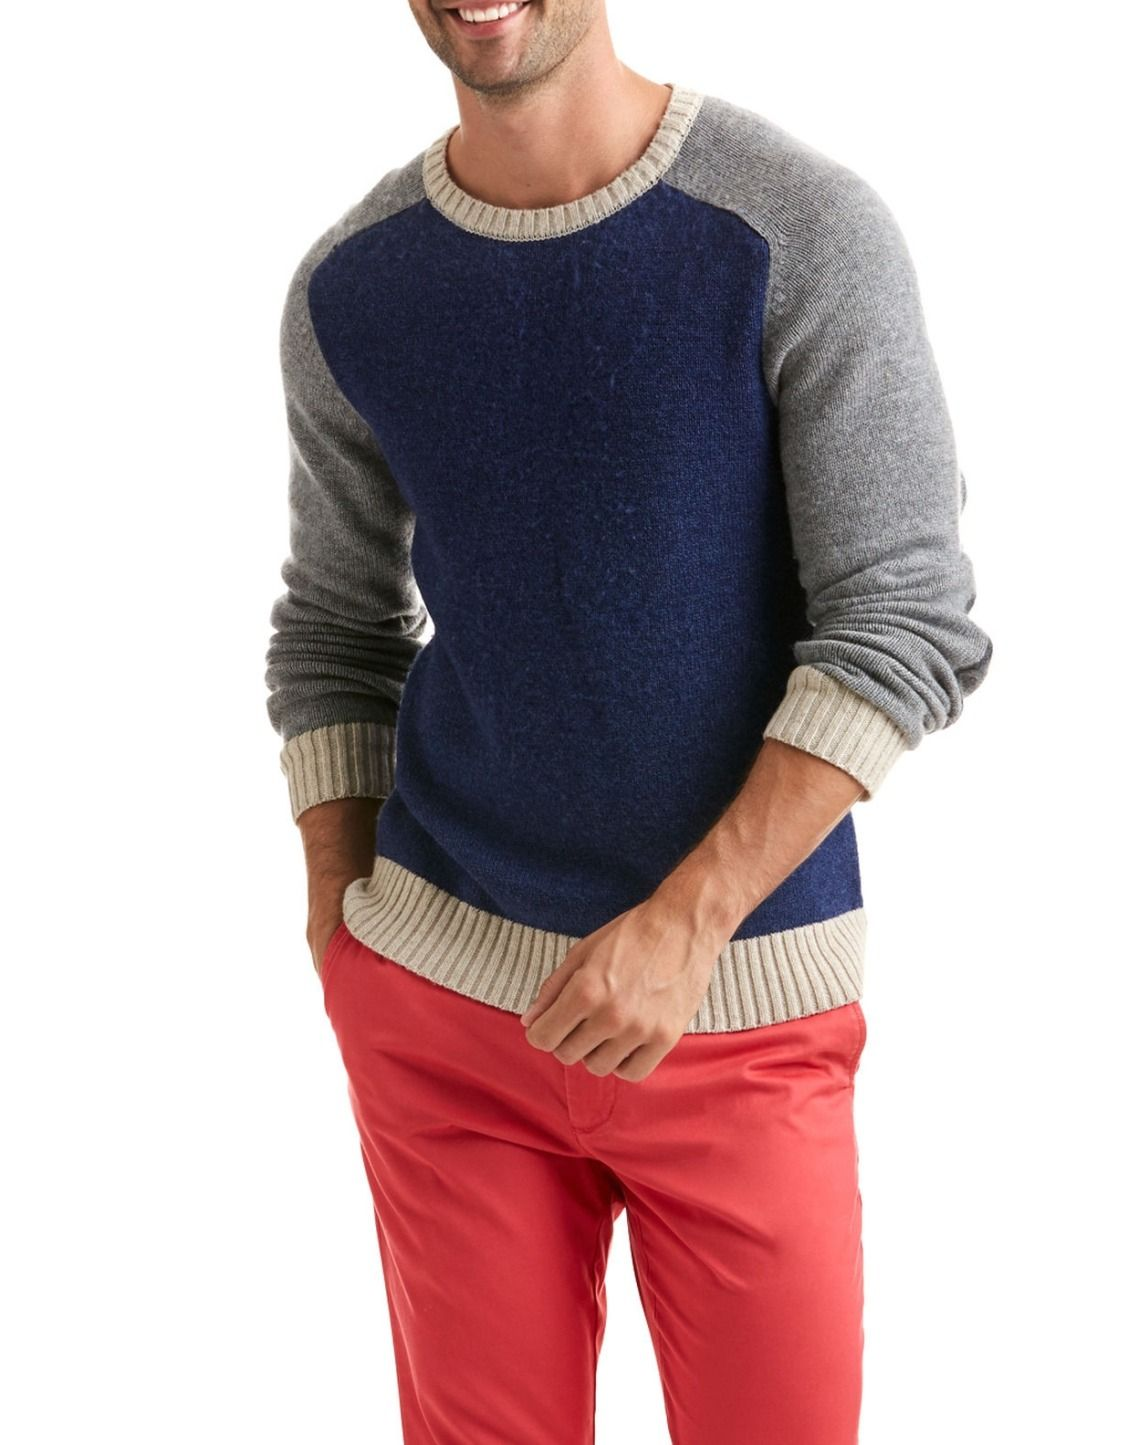 Party Crew Neck Sweater | That Stylish, Smart, Sharp Fab Guy ...